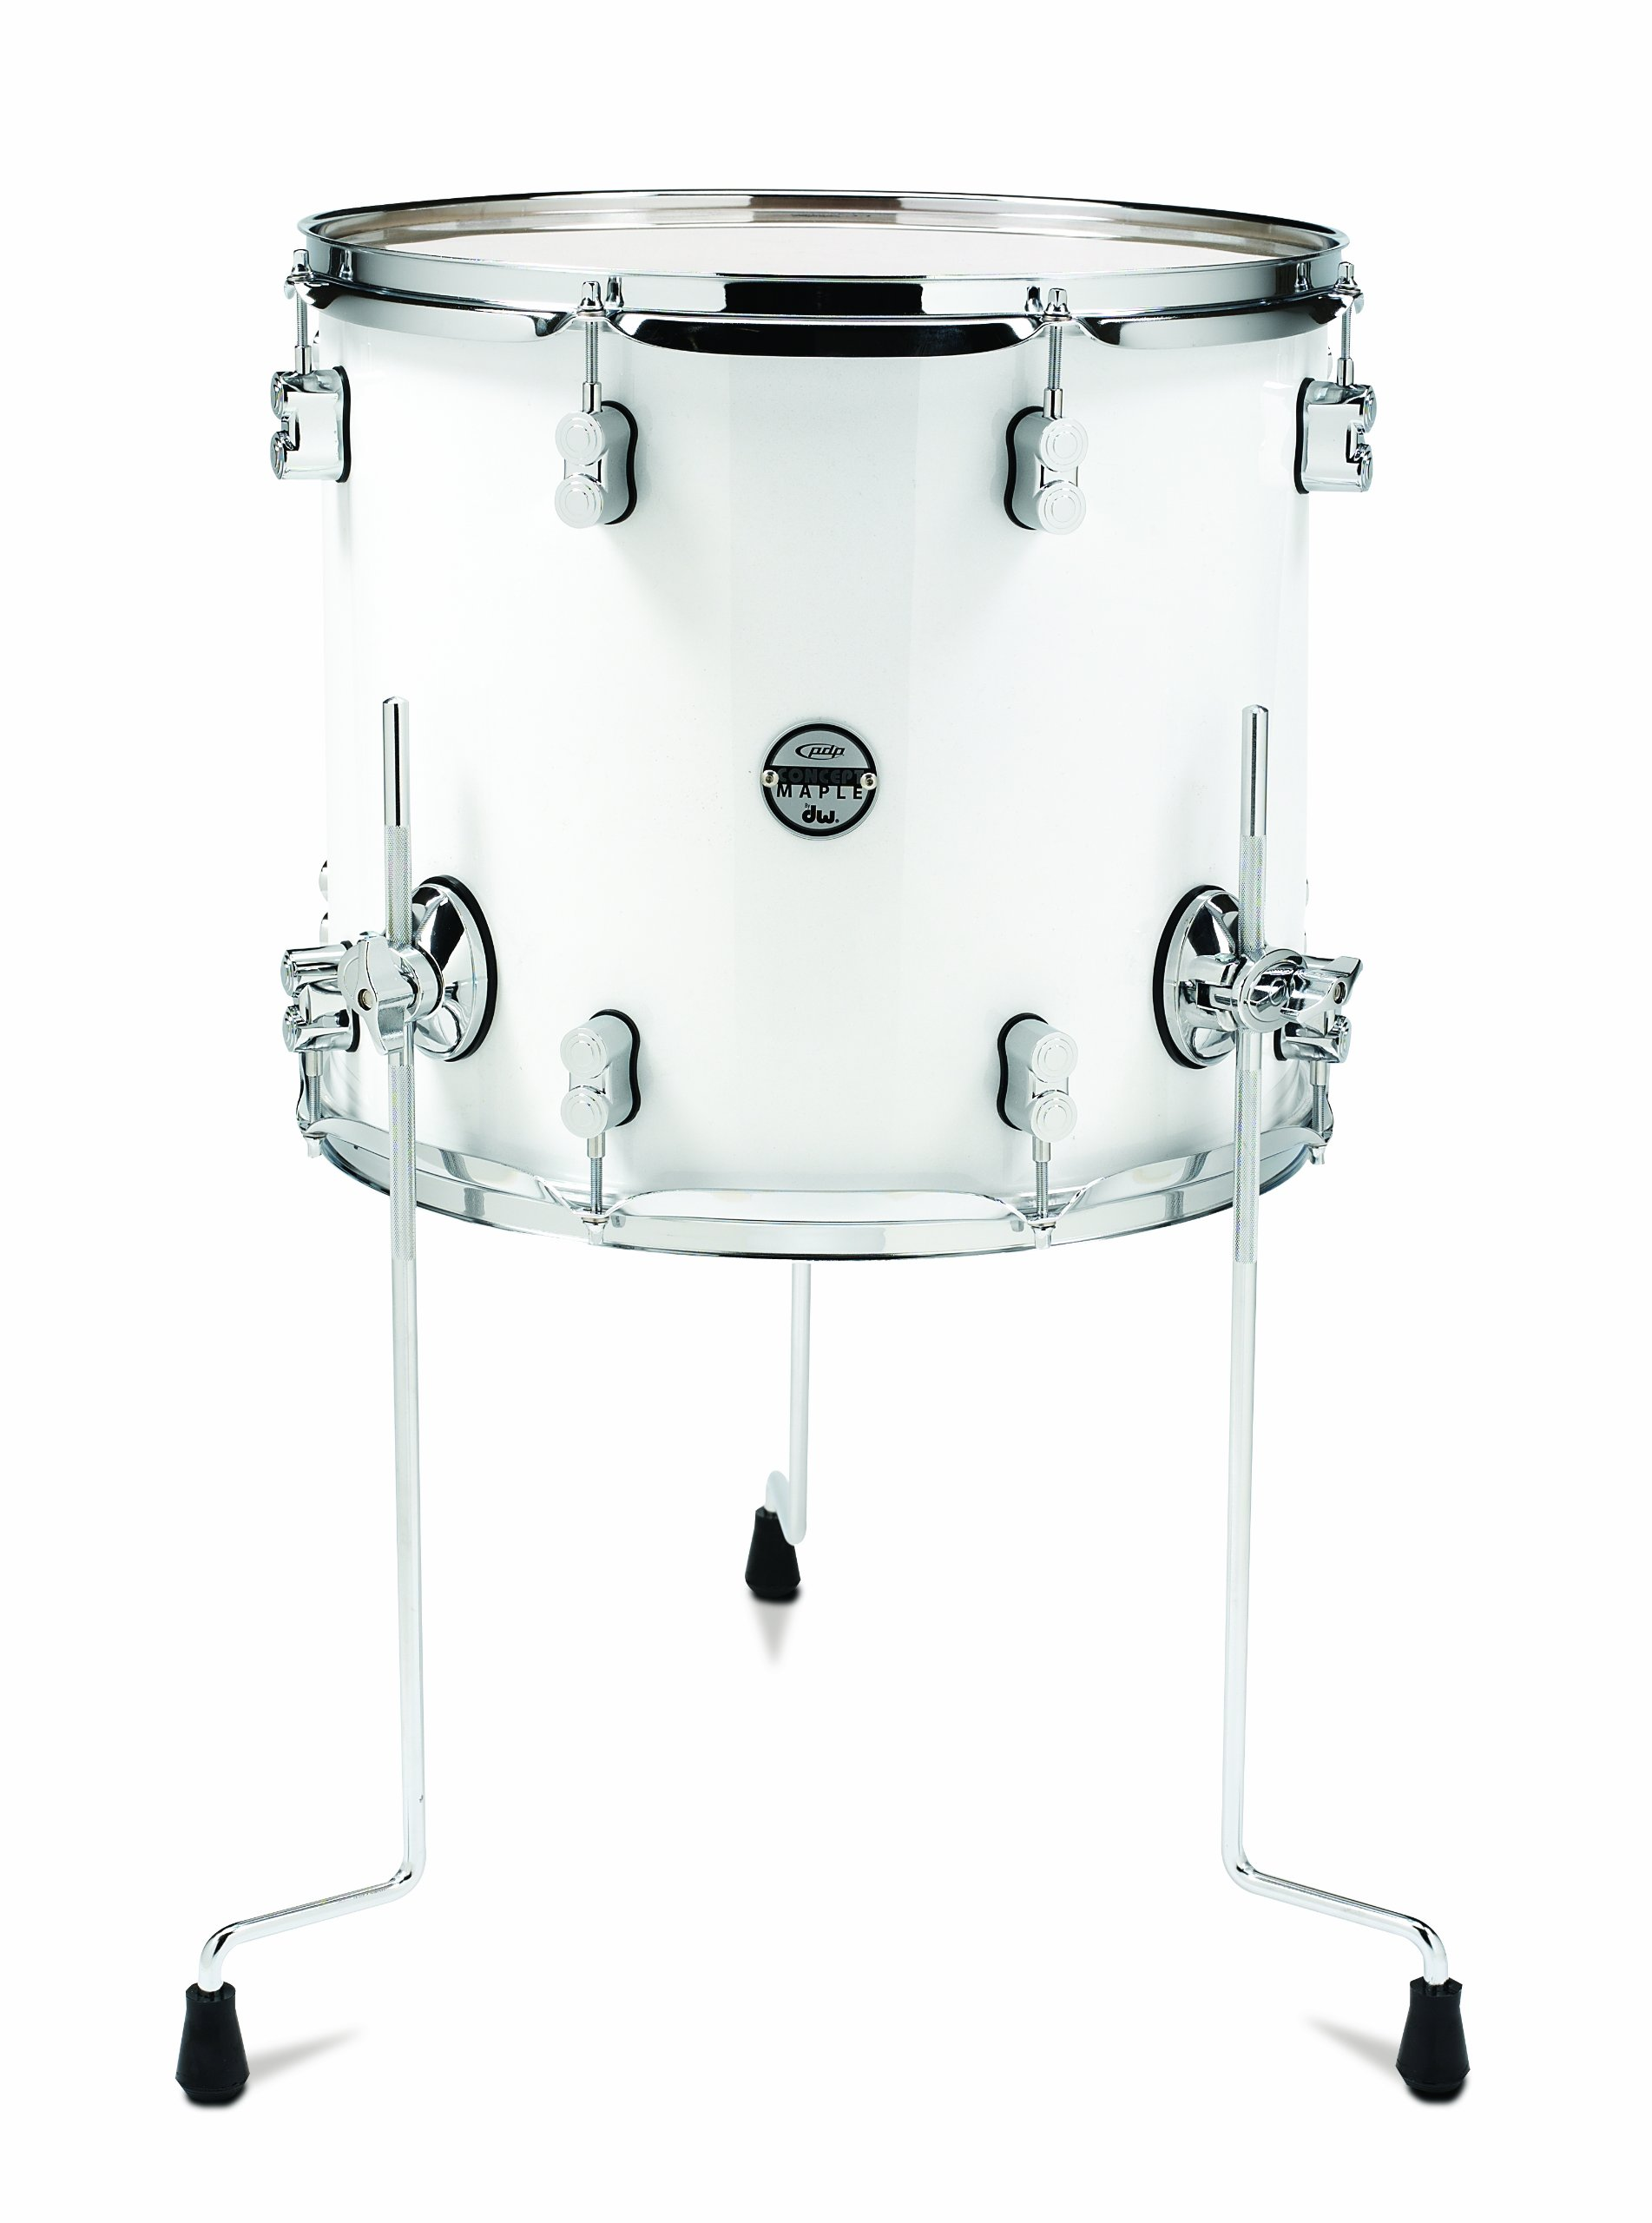 Pacific Drums PDCM1618TTPW 16 x 18 Inches Floor Tom with Chrome Hardware - Pearlescent White